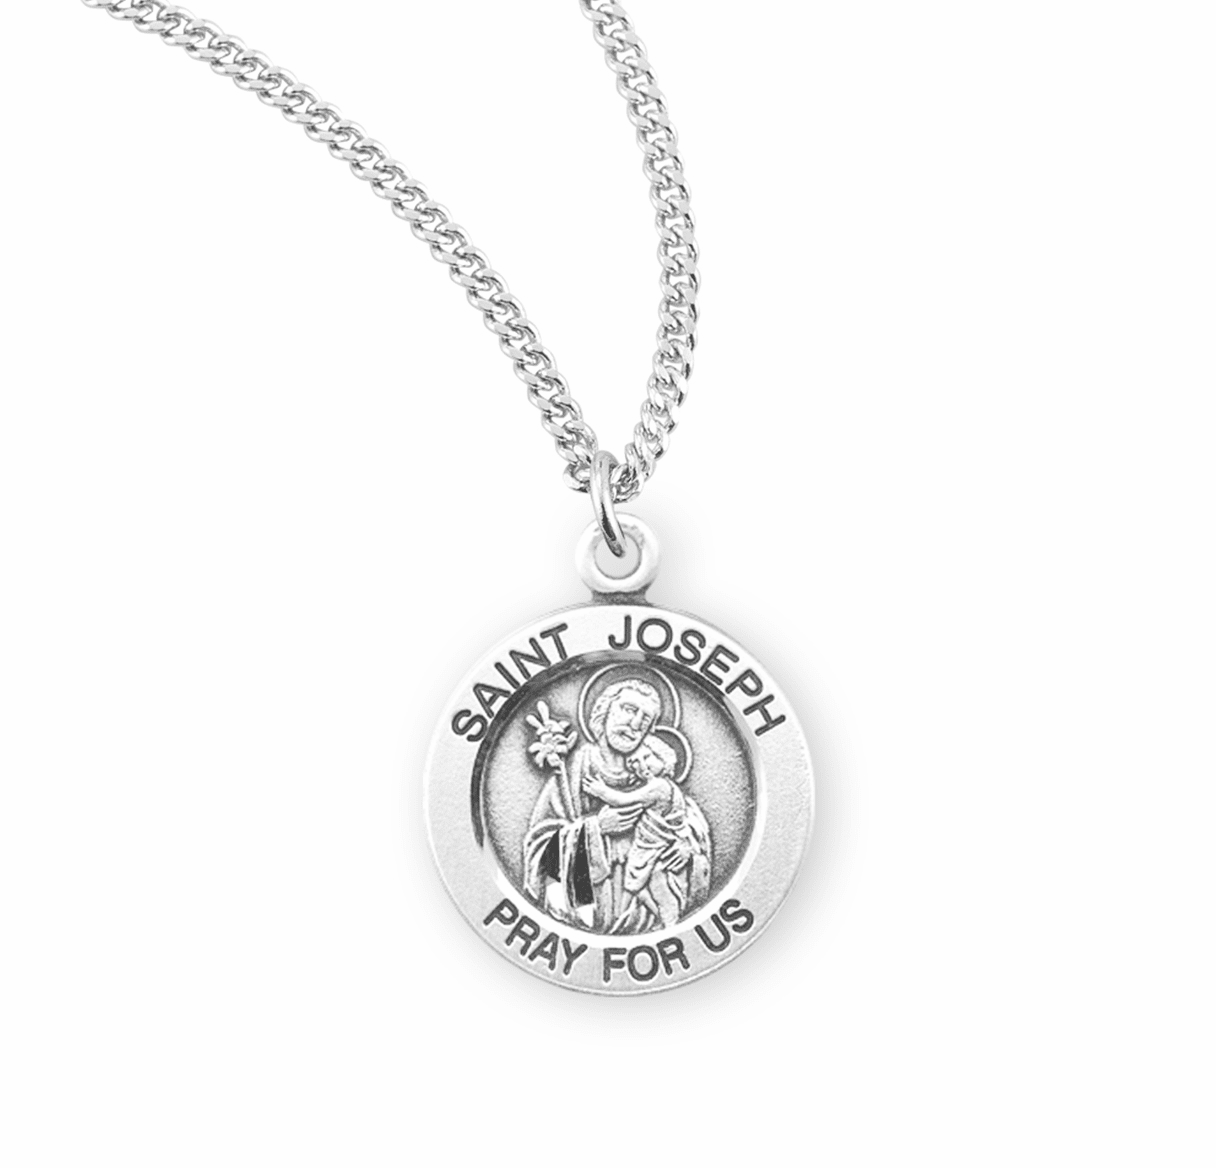 HMH Religious St Joseph holding Baby Jesus Round Sterling Silver Pendant Necklace